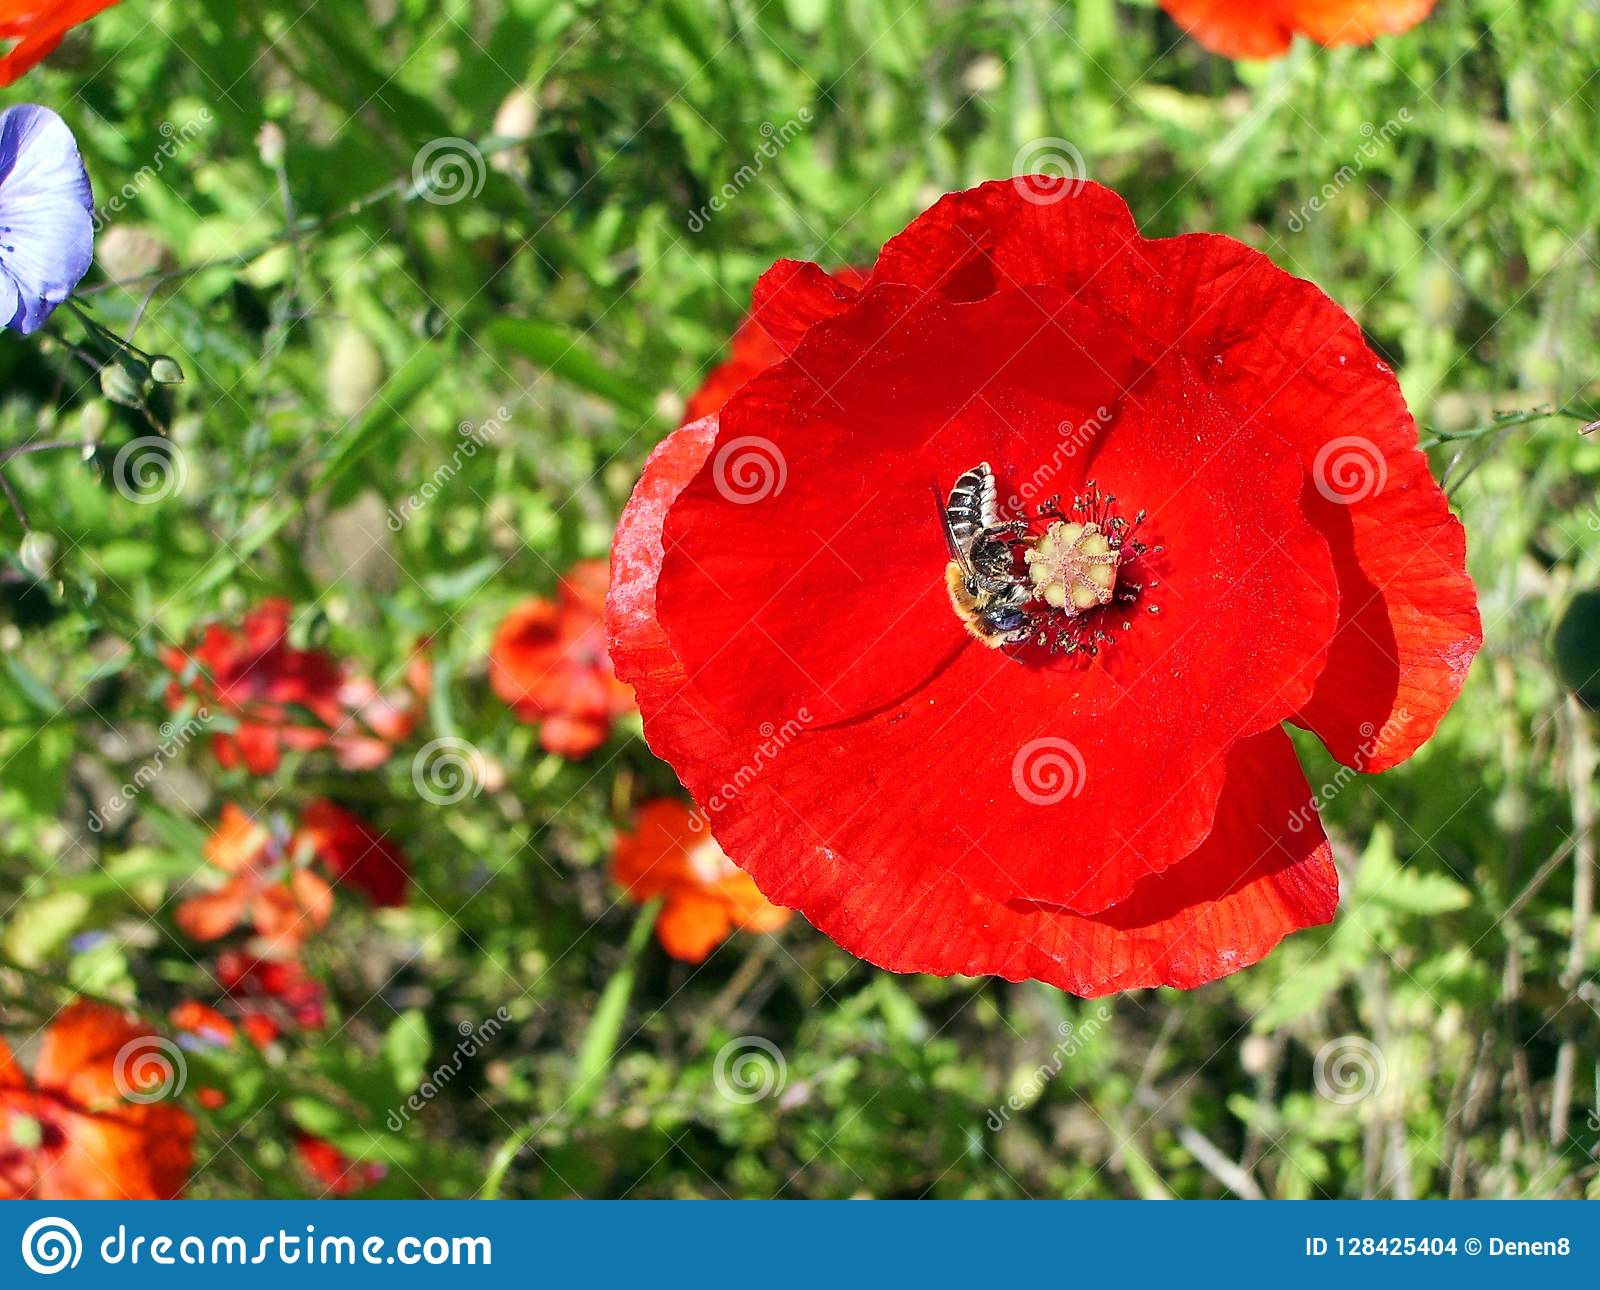 Poppy flower with a bee collecting honey on a green background